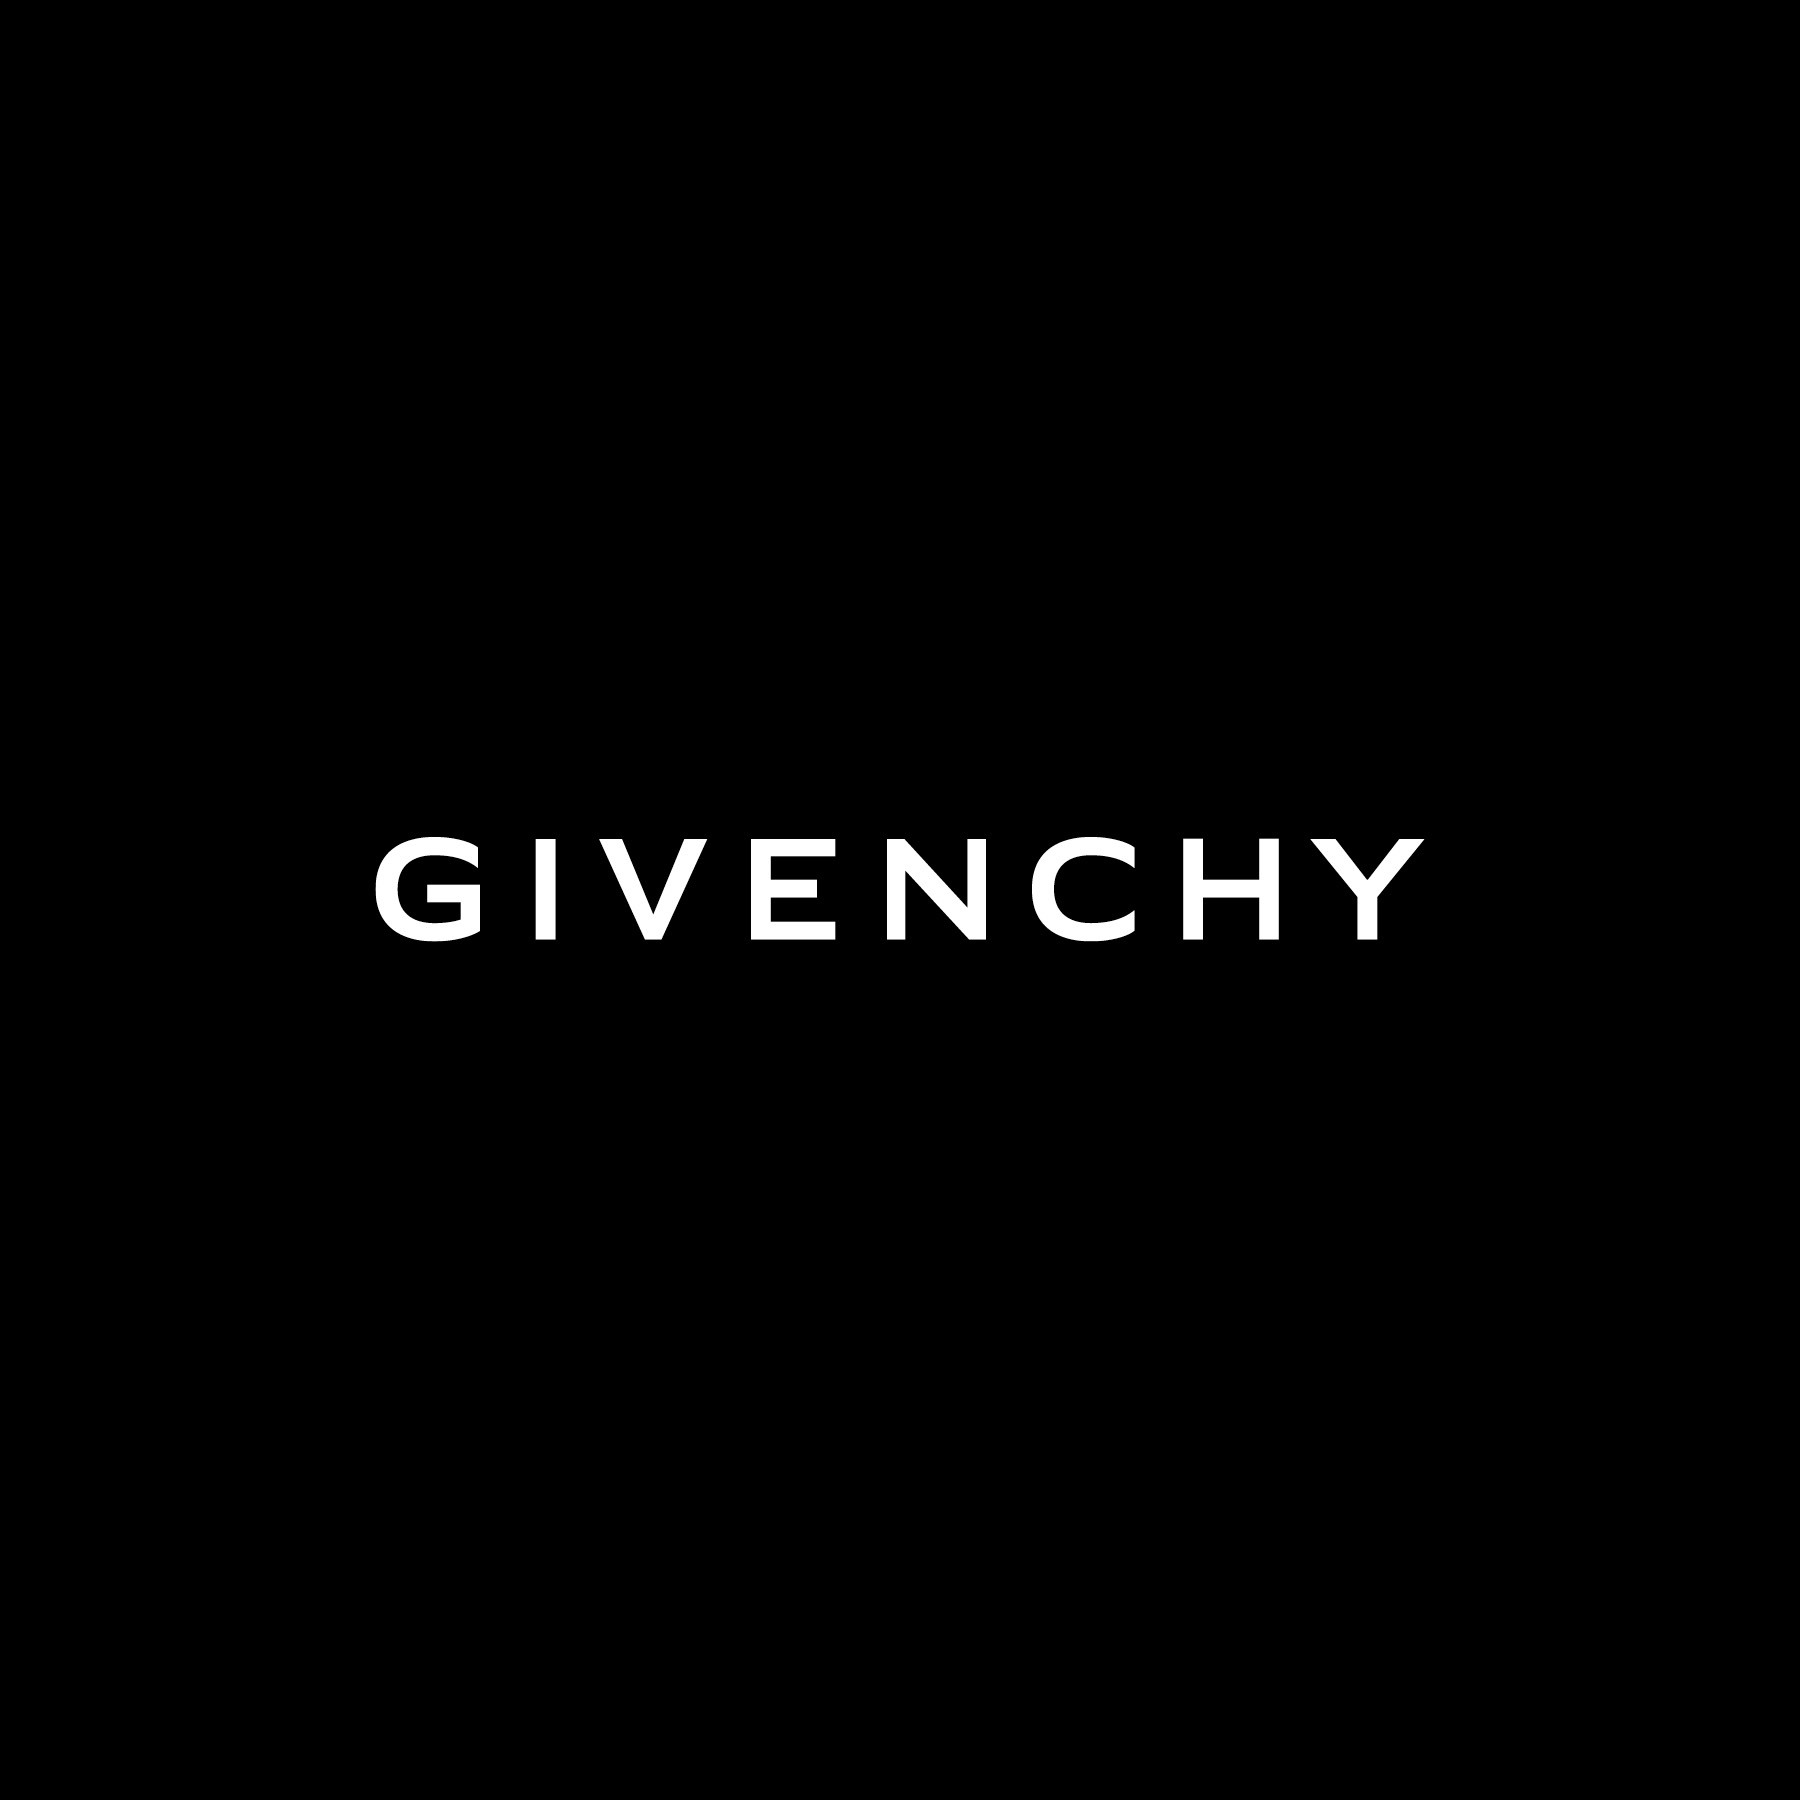 givenchy-cover.jpg